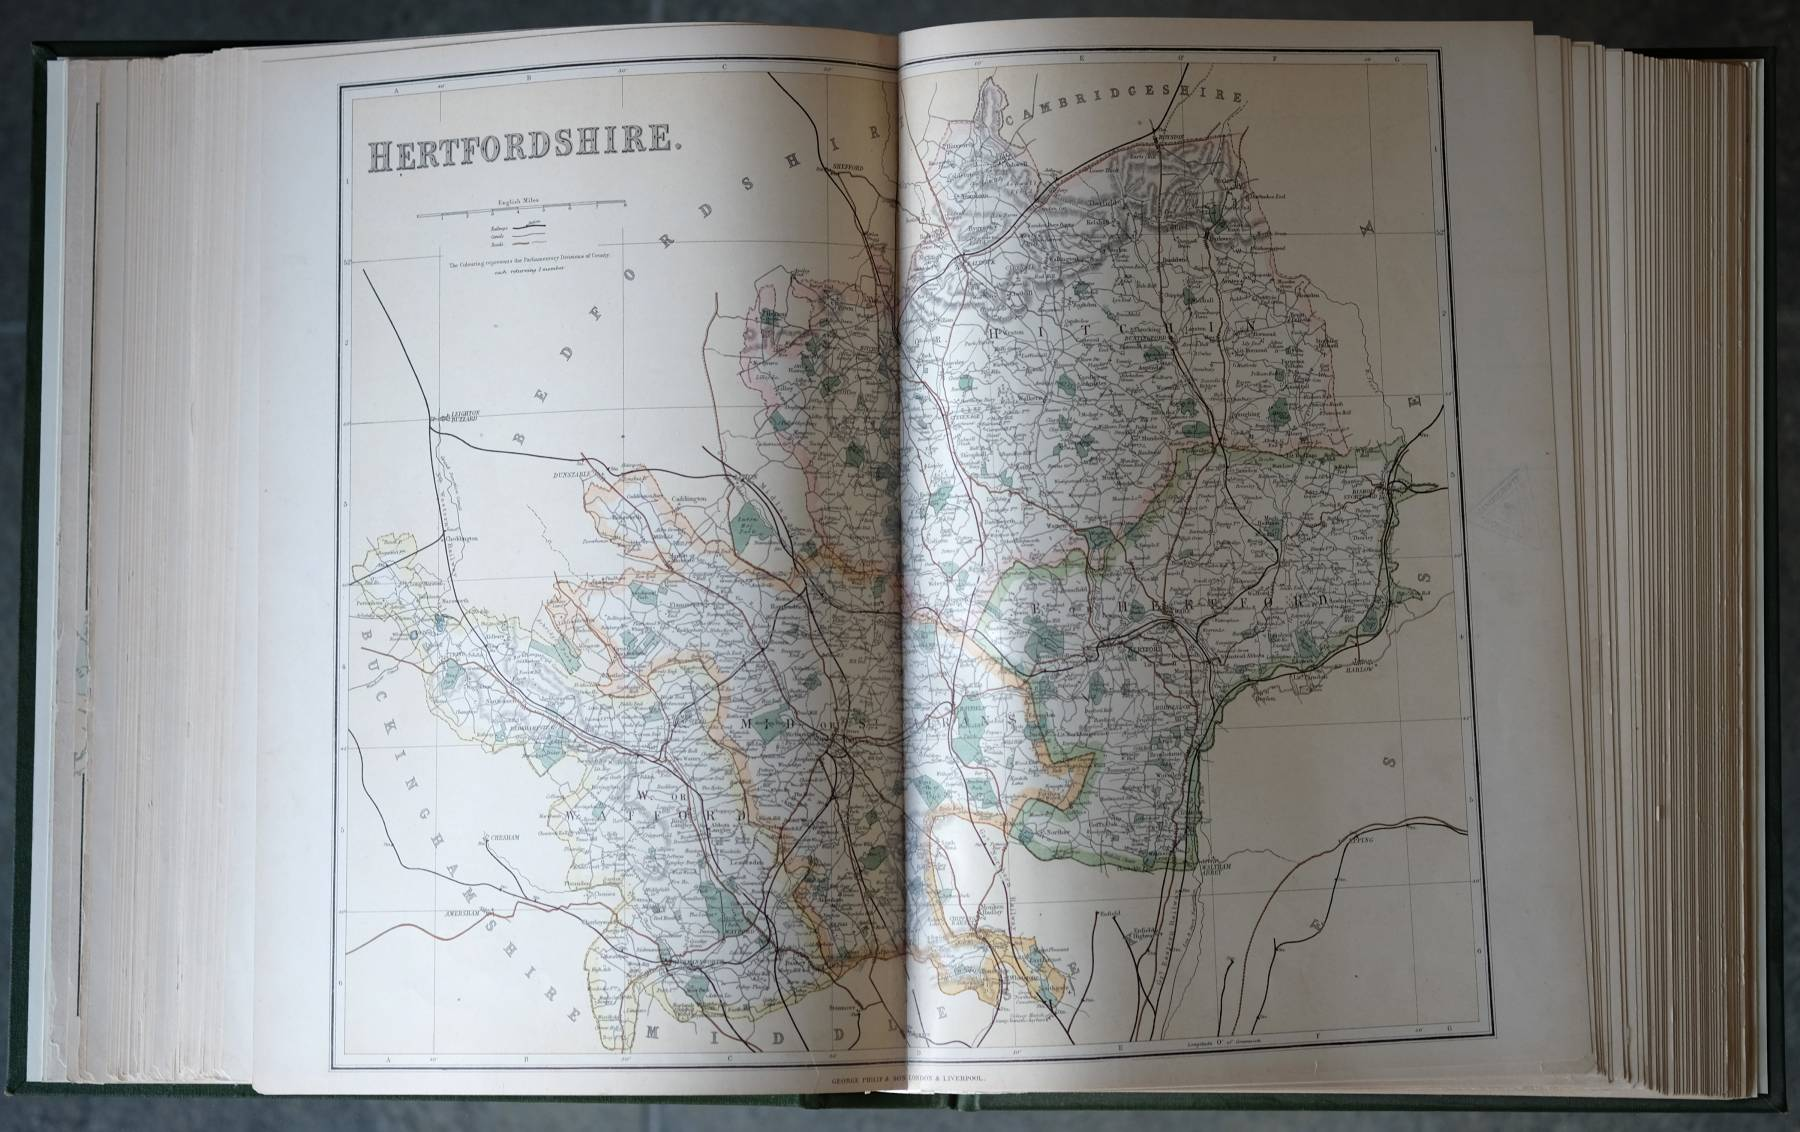 Philip's Atlas of the Counties of England